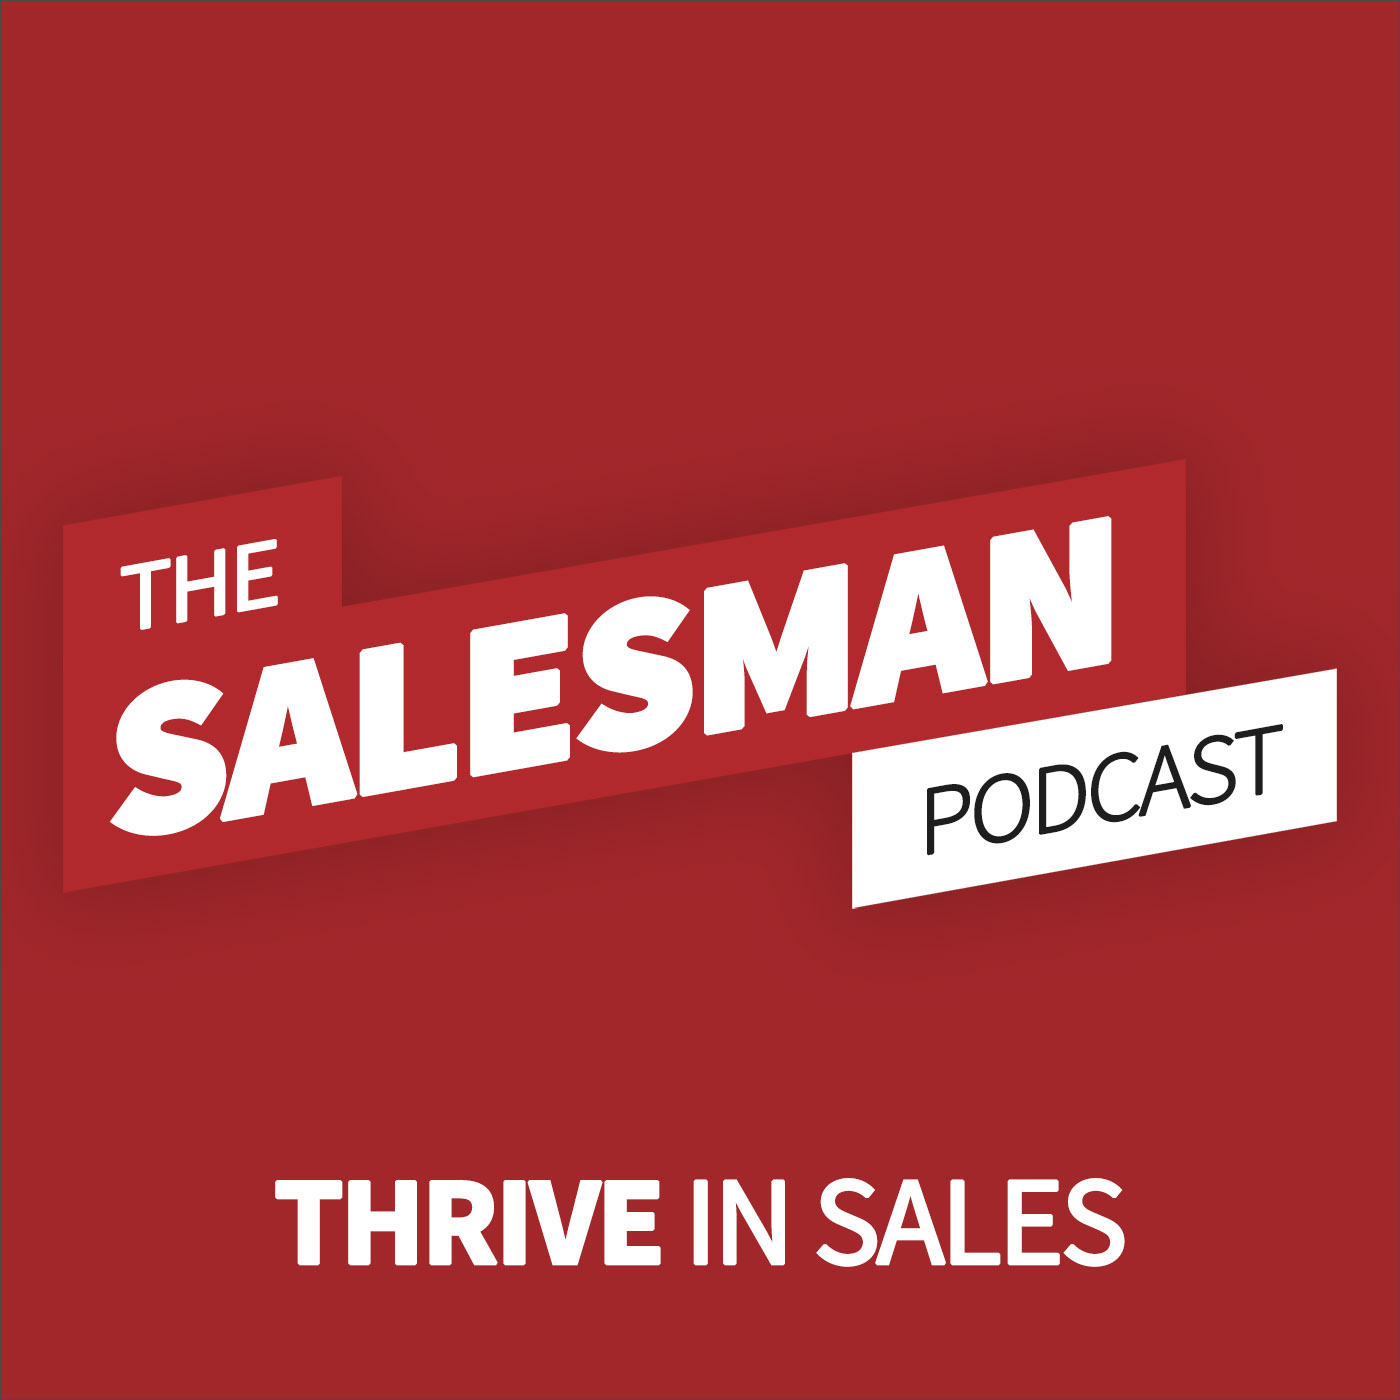 Salesman Podcast - The Biggest B2B Sales And Selling Podcast